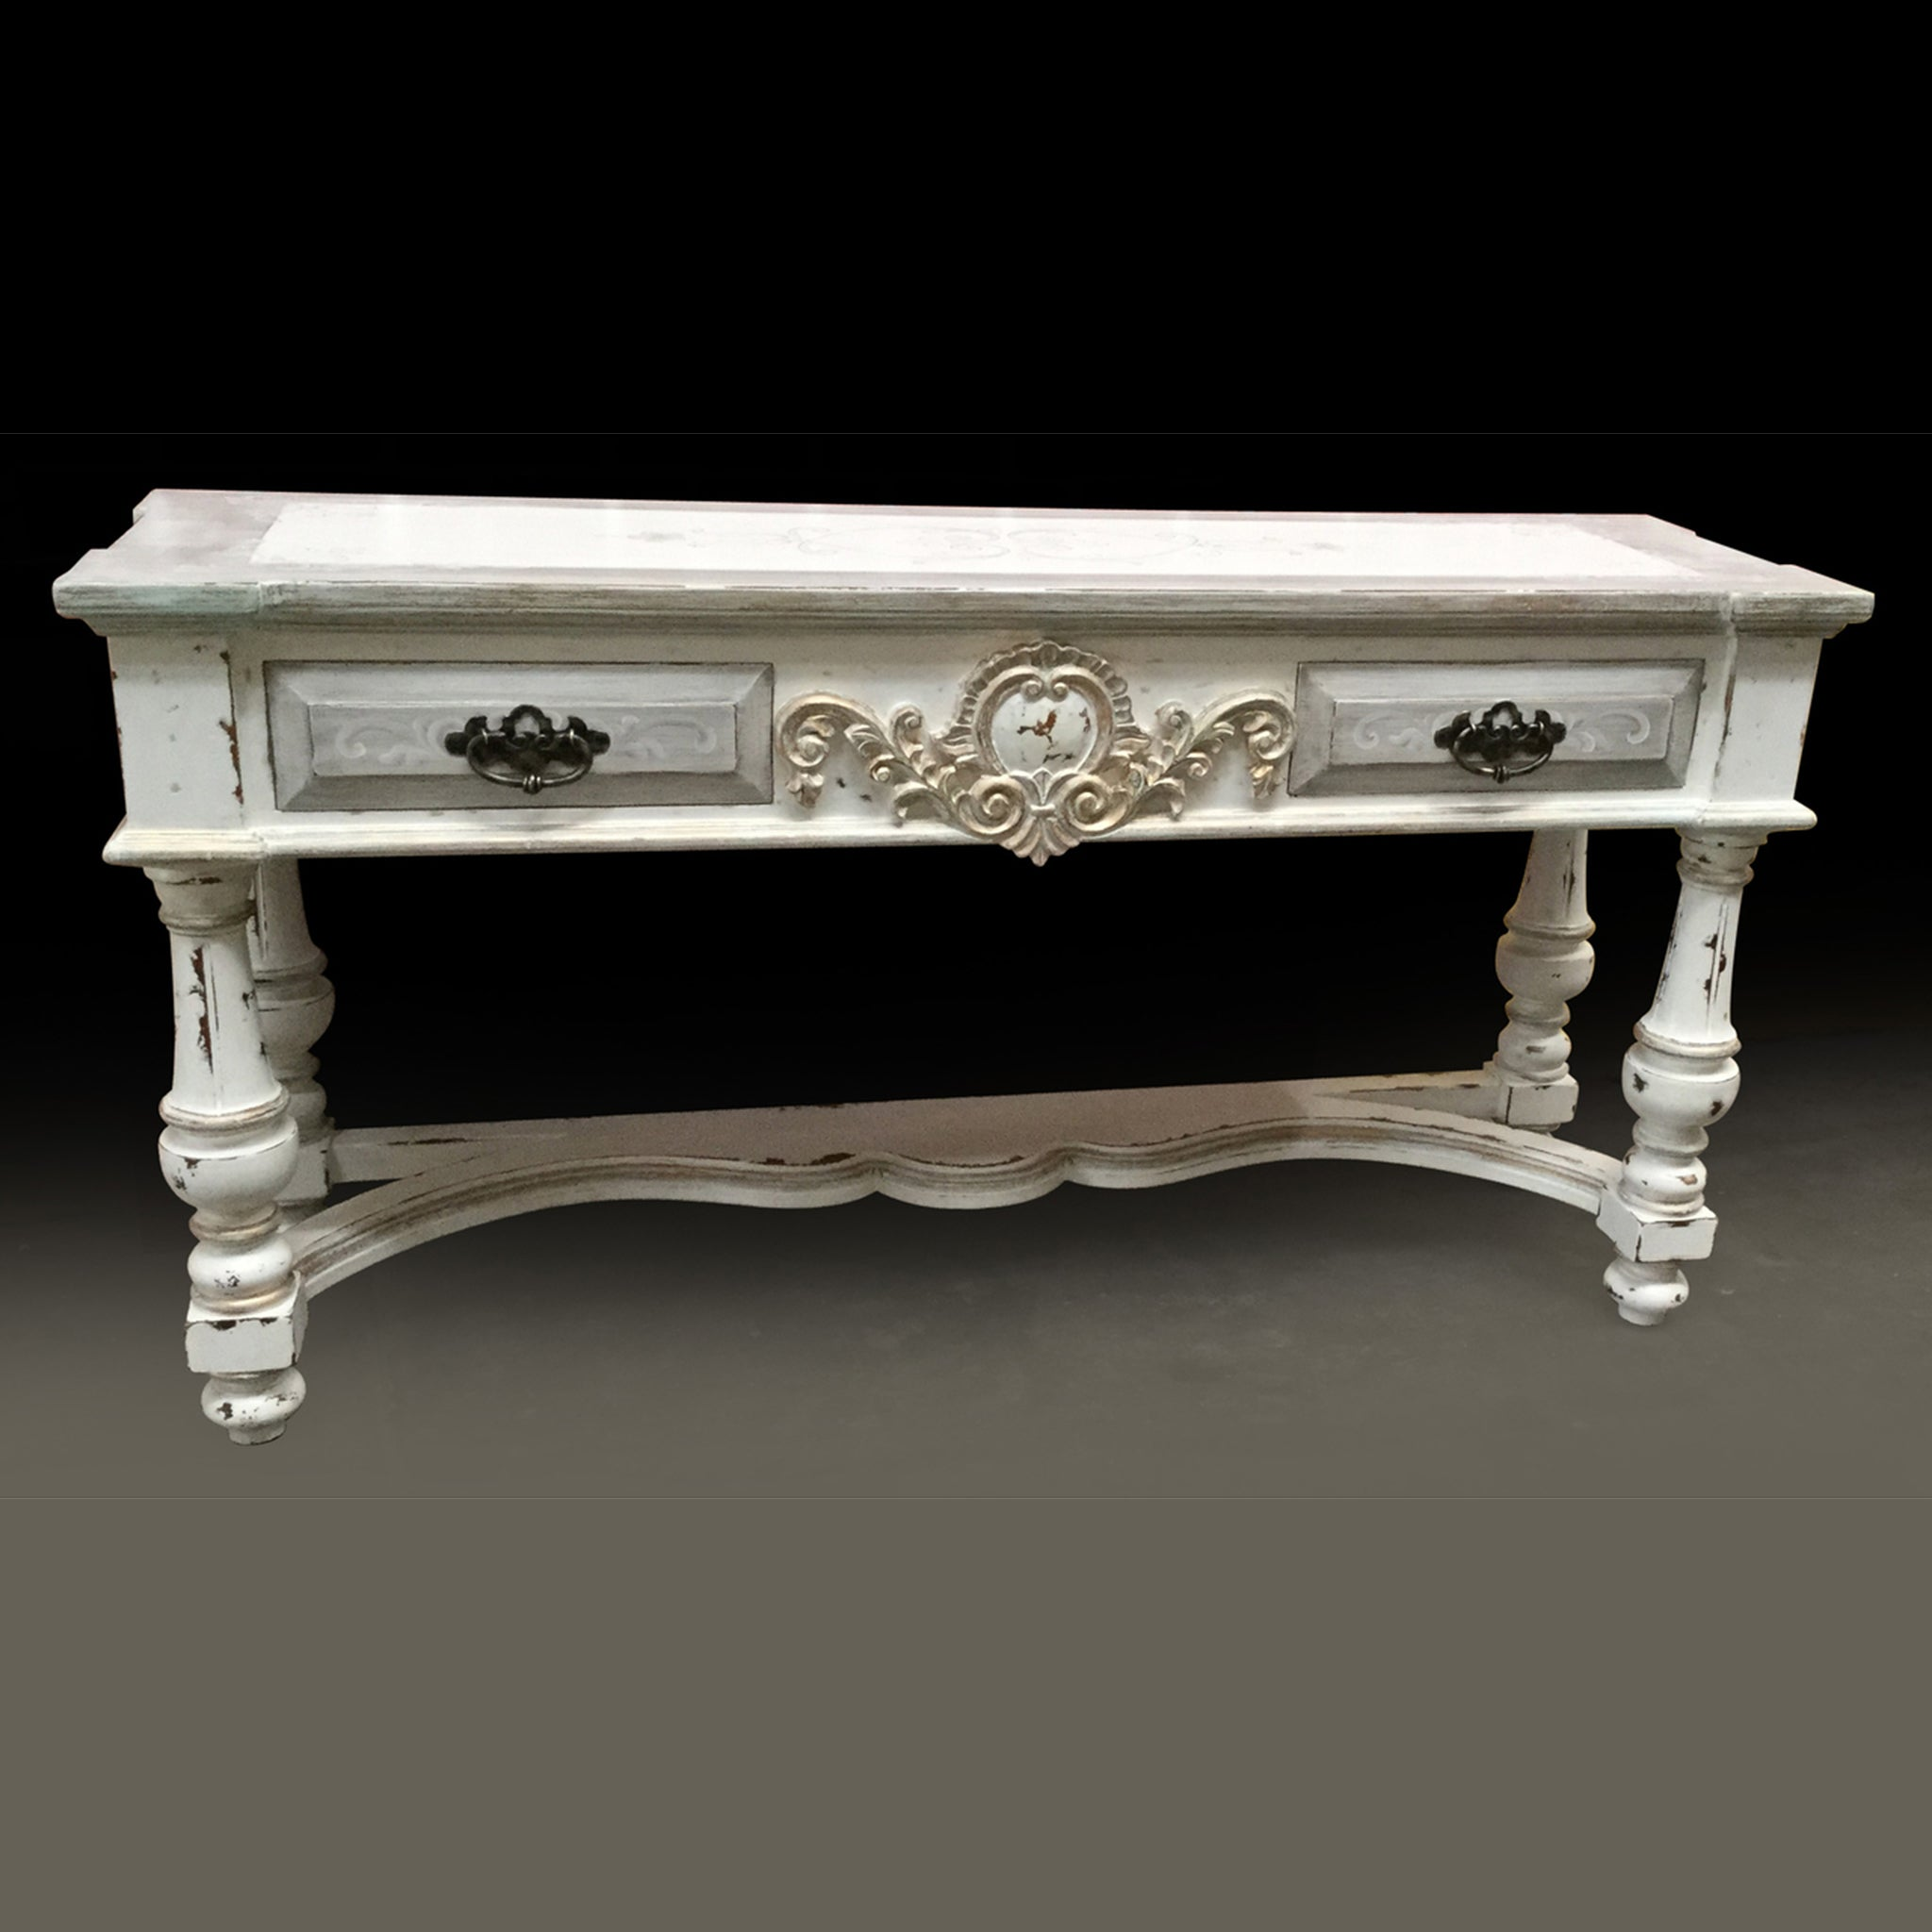 Cabo Hand Painted Console Table - Furniture on Main